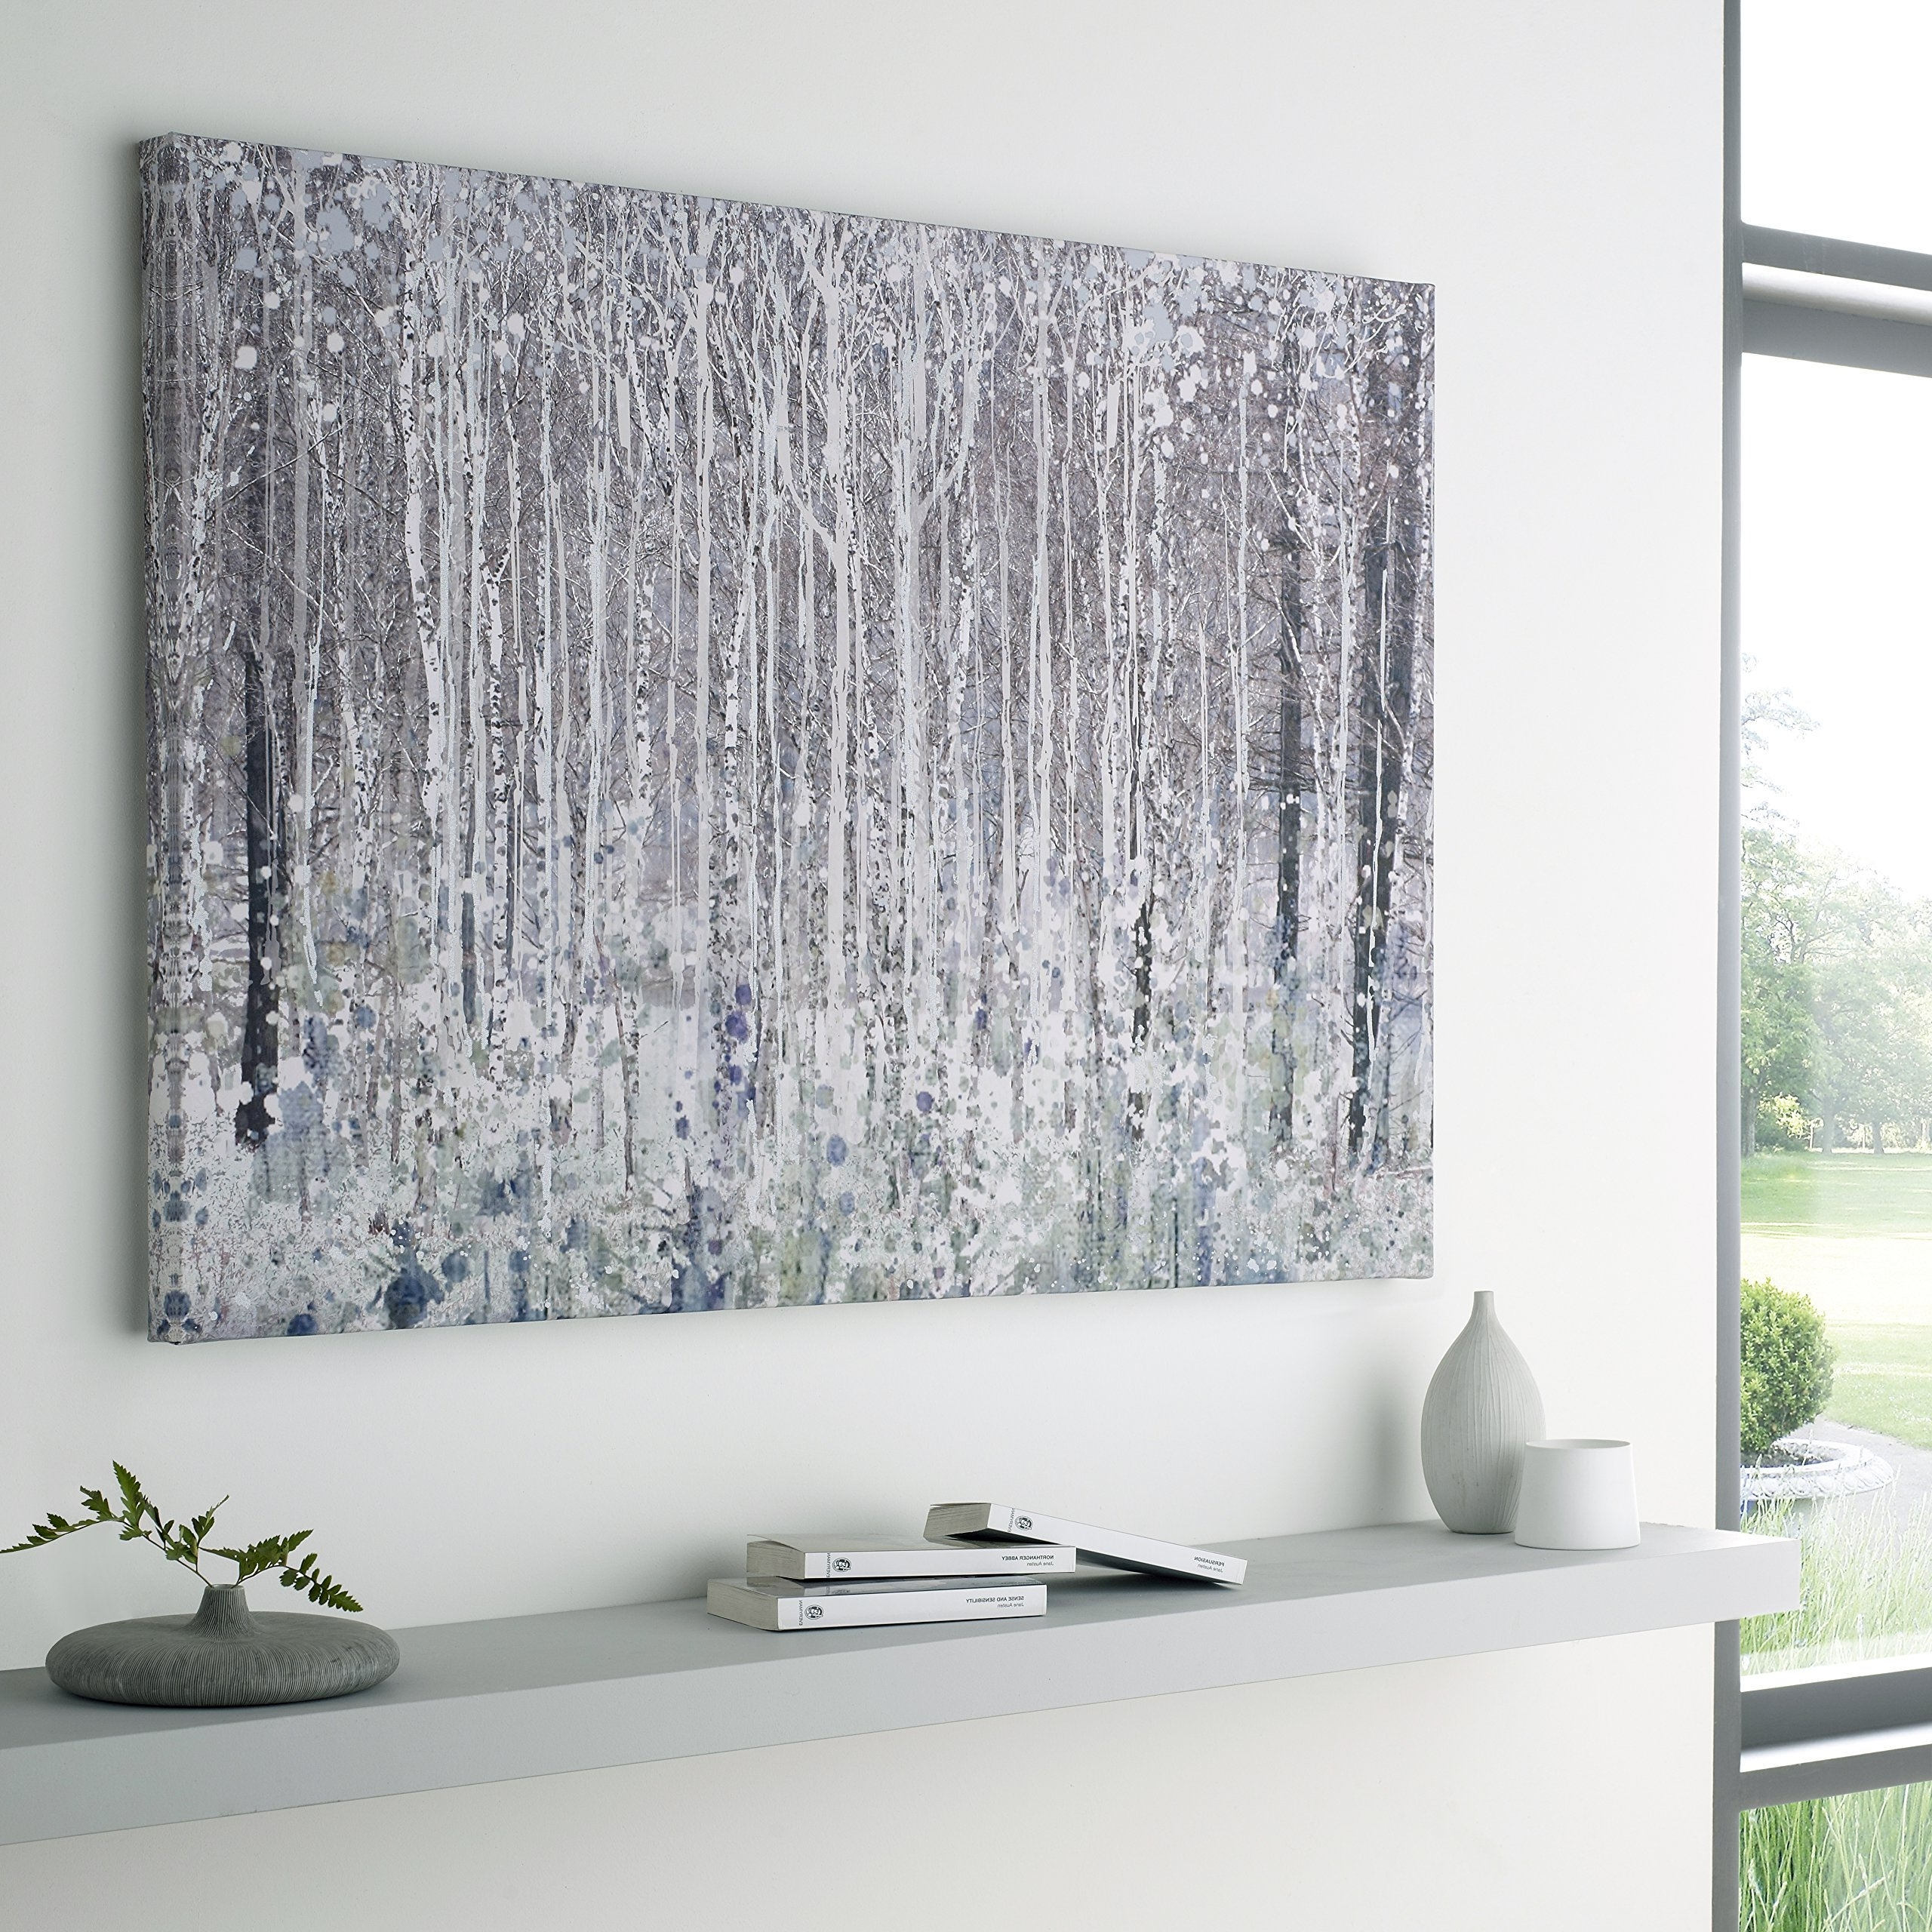 Gray Canvas Wall Art pertaining to Well known Large Canvas Wall Art: Amazon.co.uk